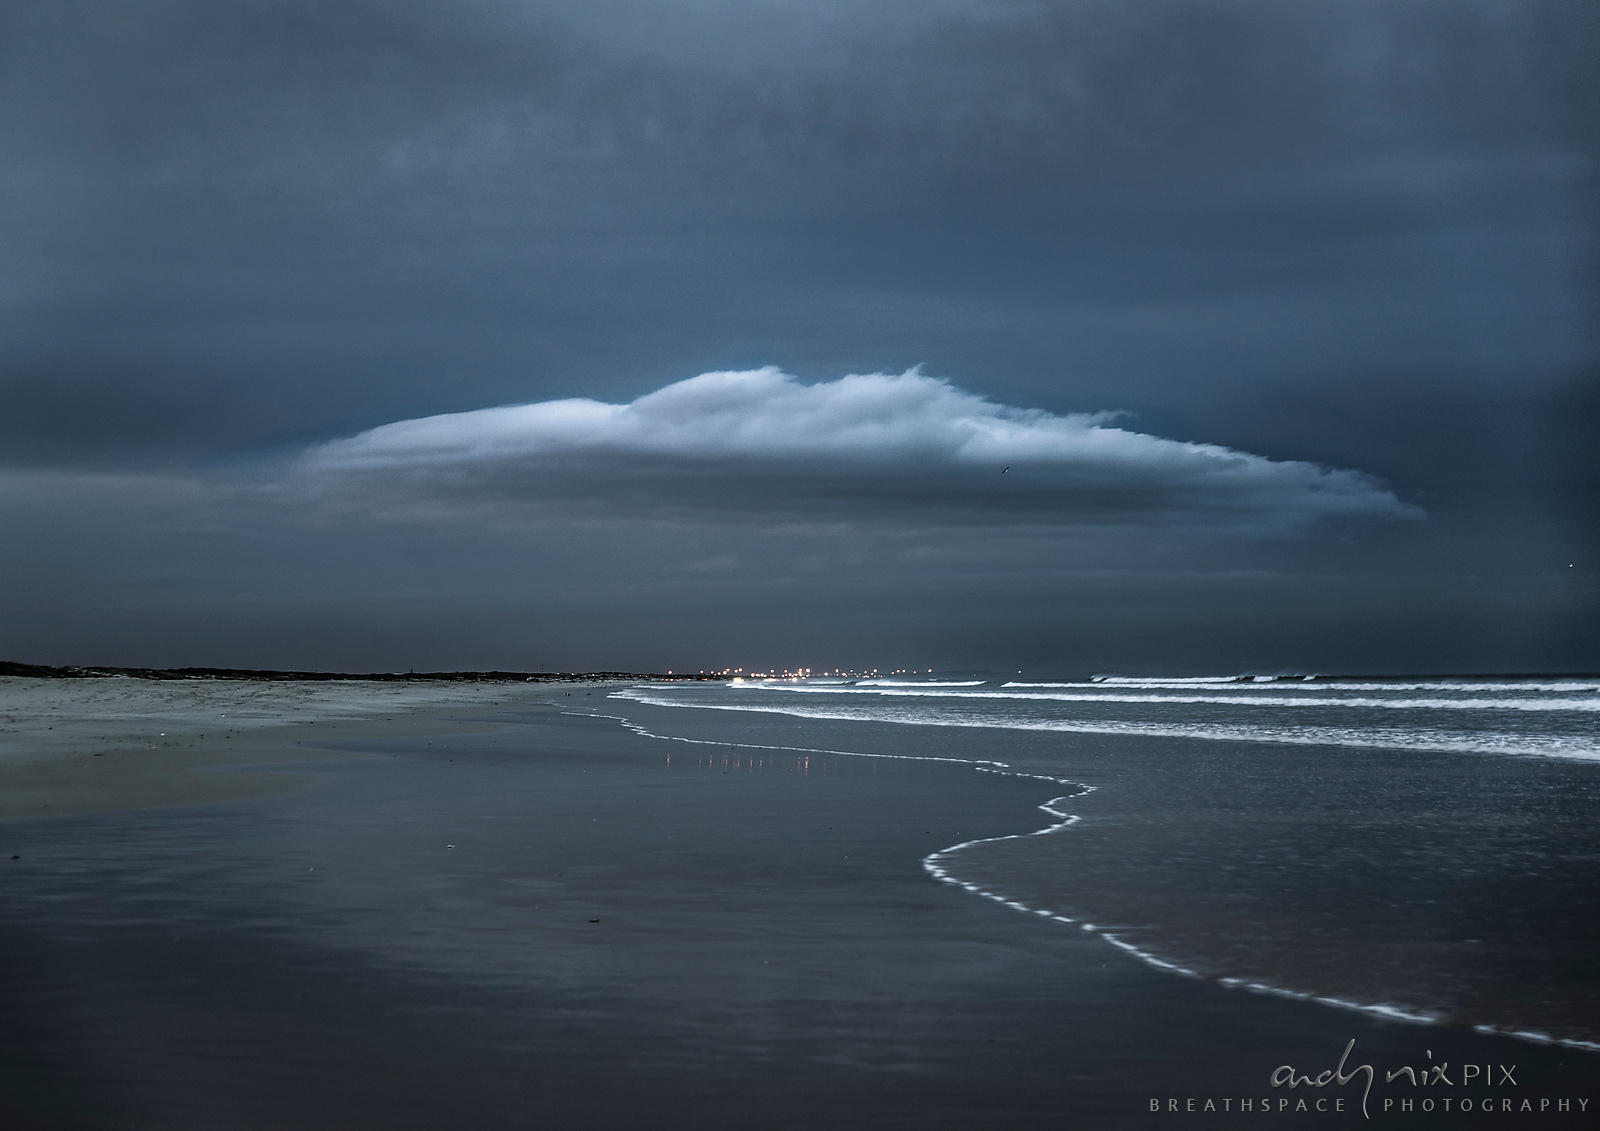 Grey UFO-shaped cloud over a beach at night, lights in the distance.